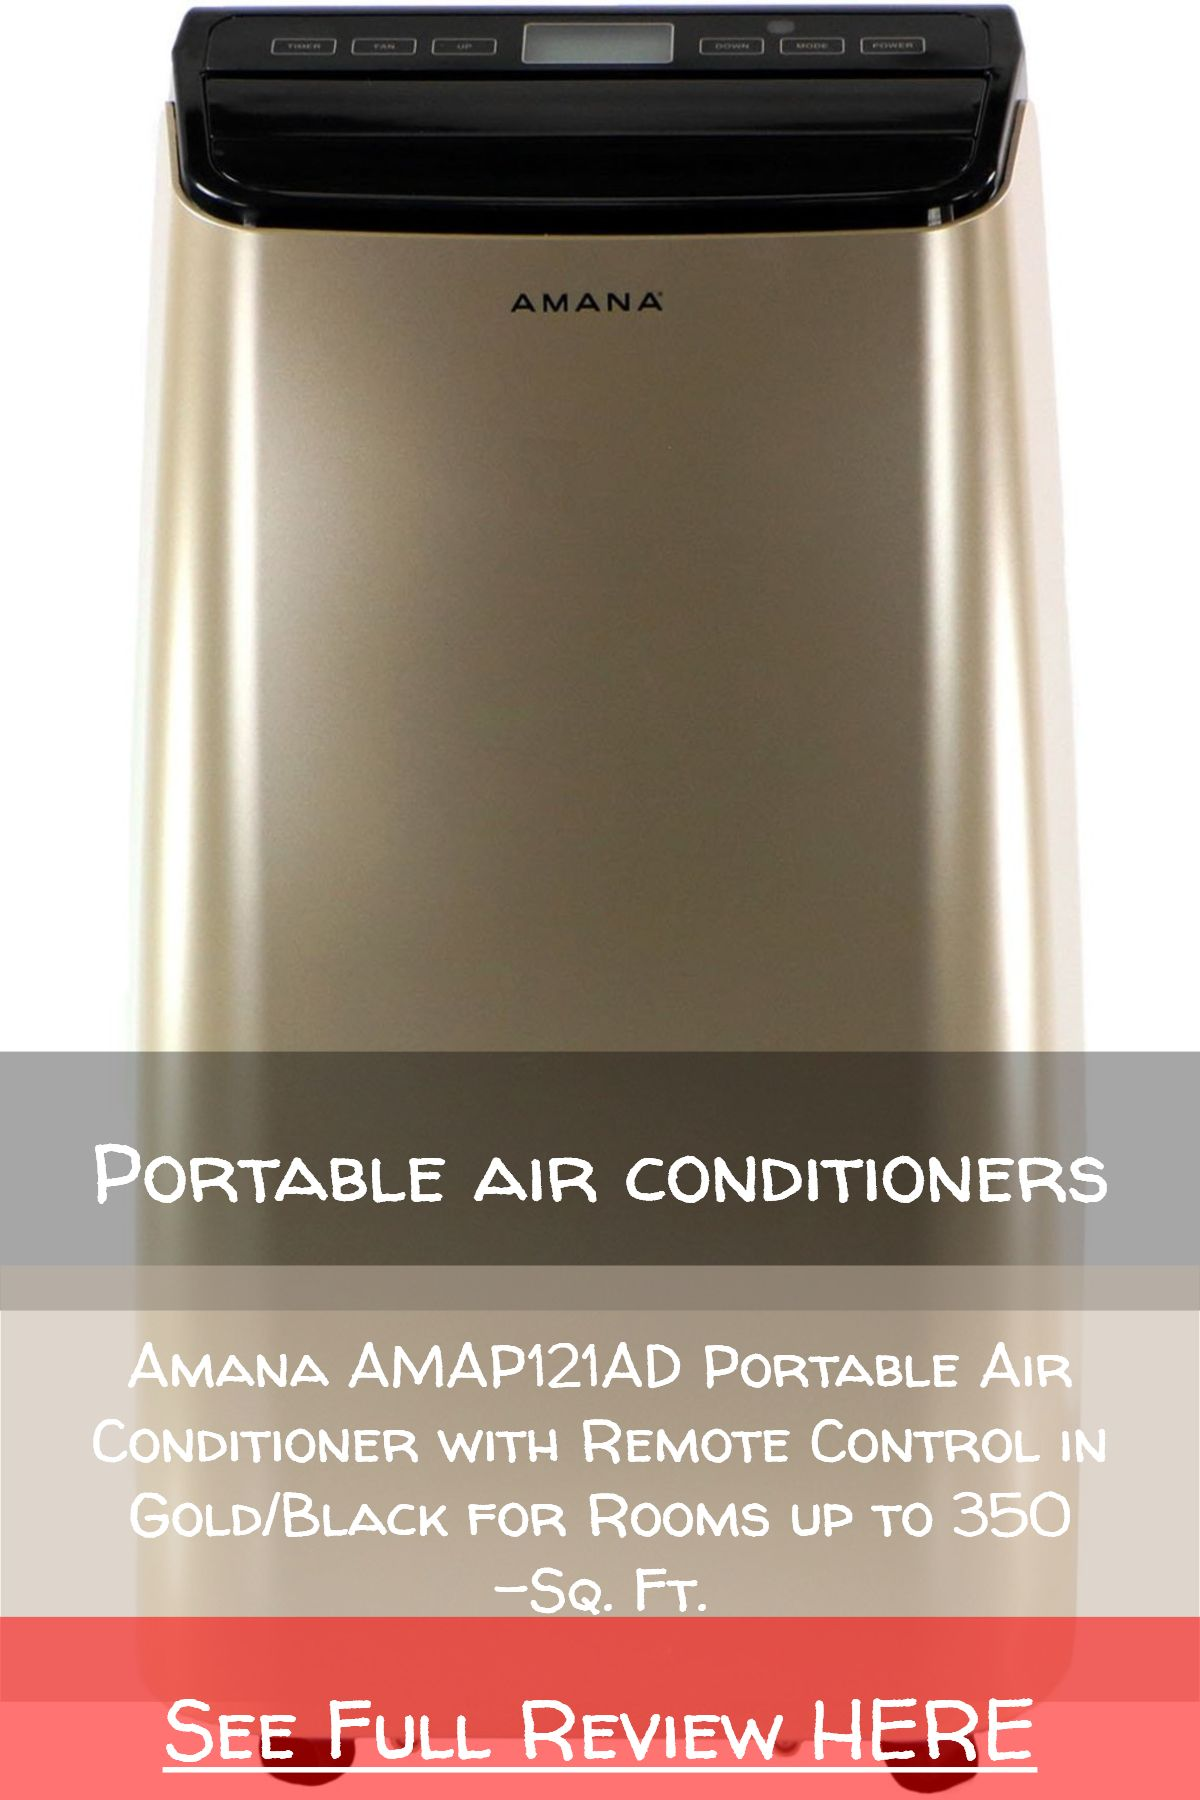 Portable air conditioners / Amana AMAP121AD Portable Air